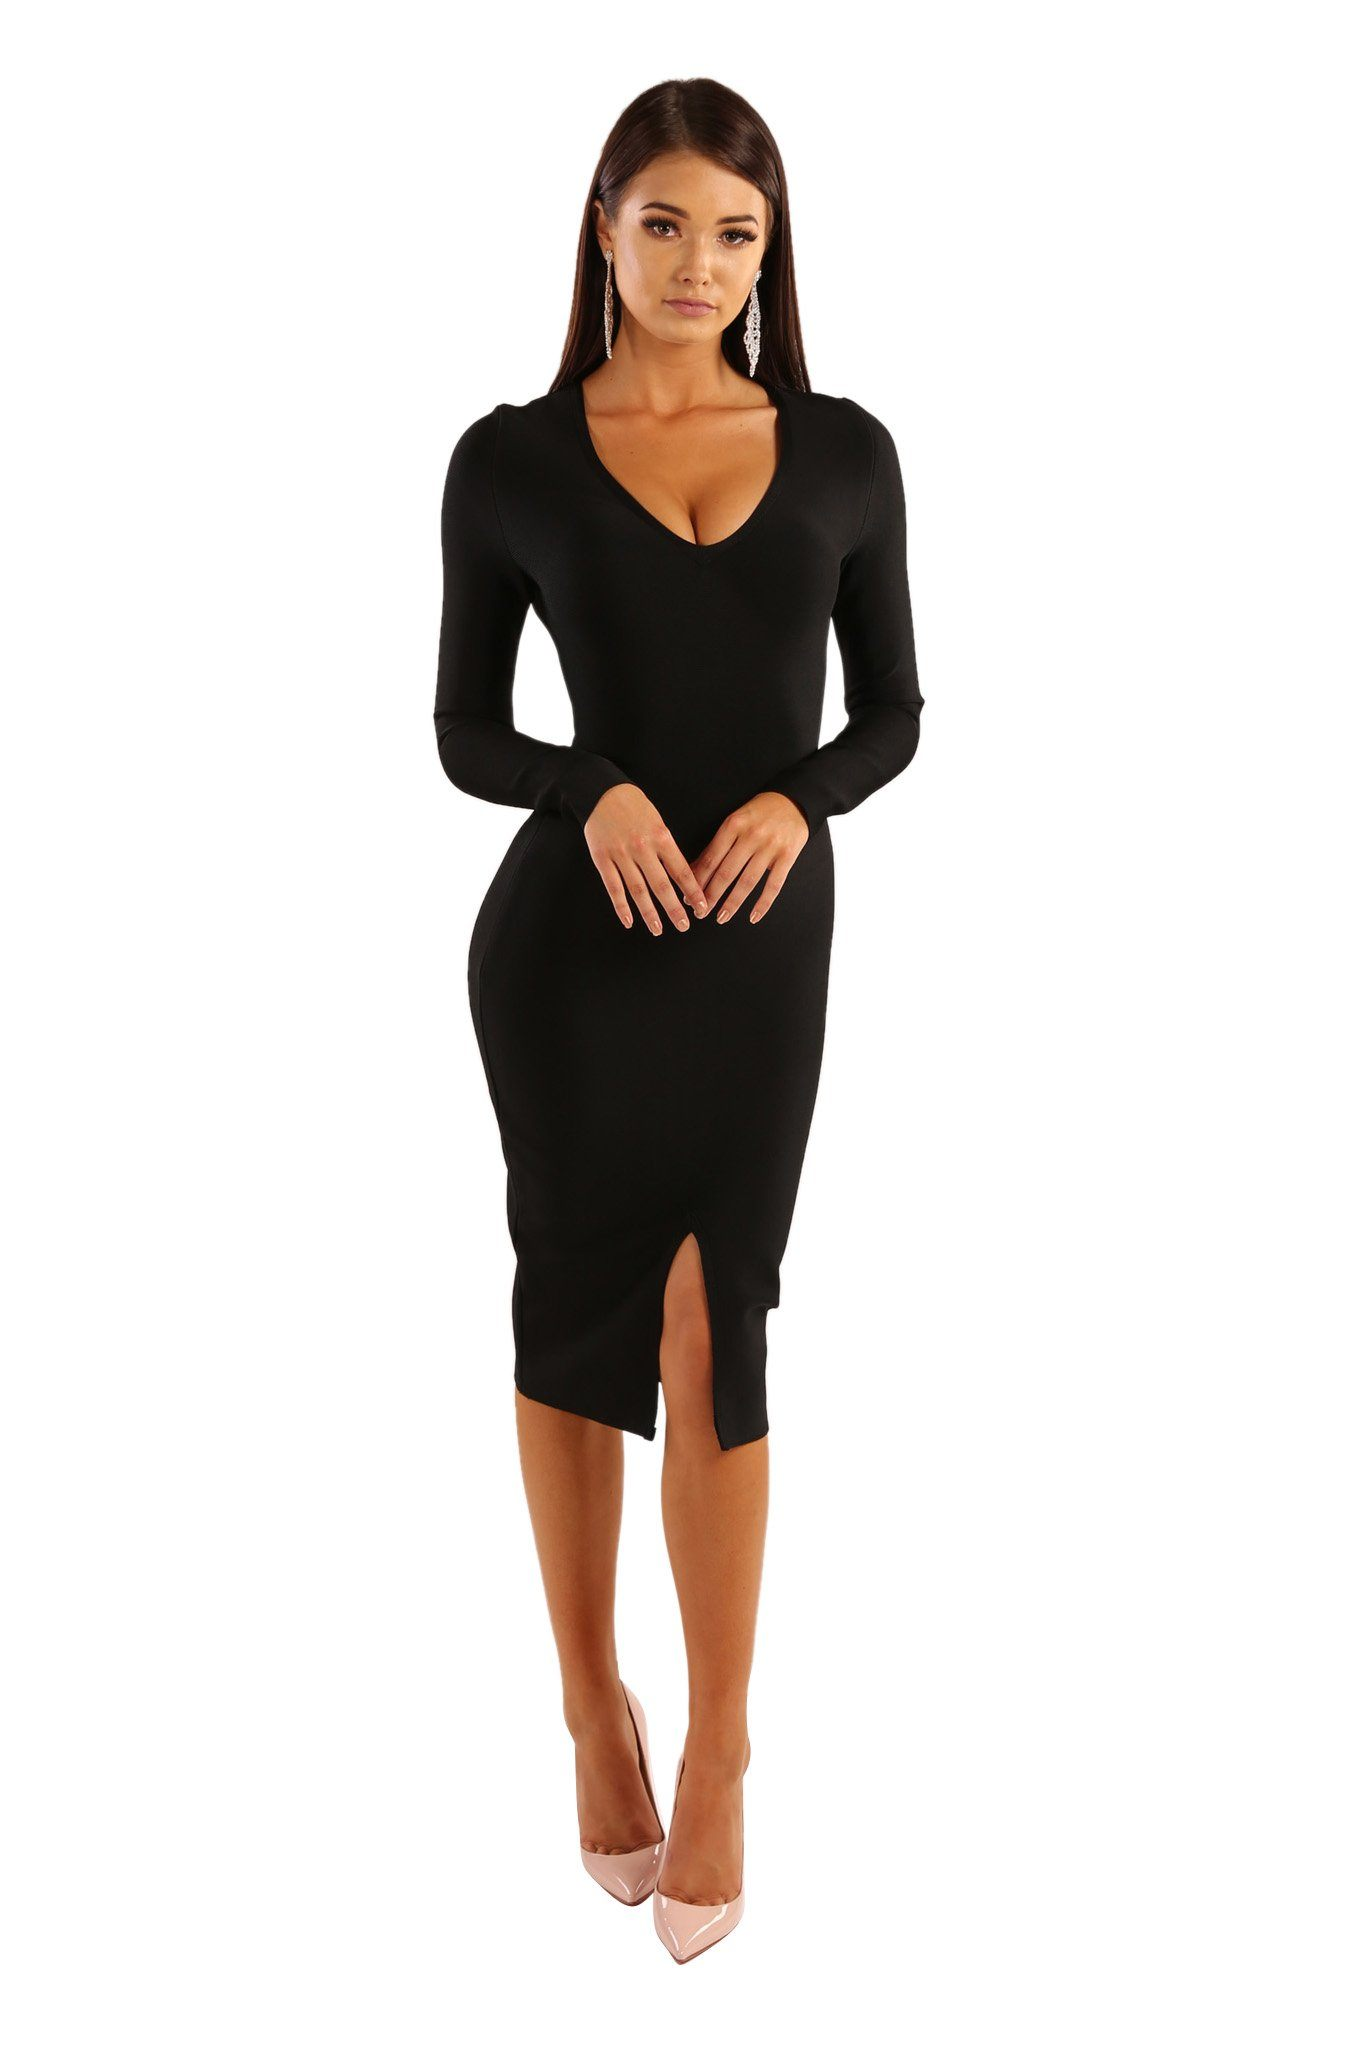 Black below-knee length long sleeve slim fit bandage dress with deep V neckline and front slit design